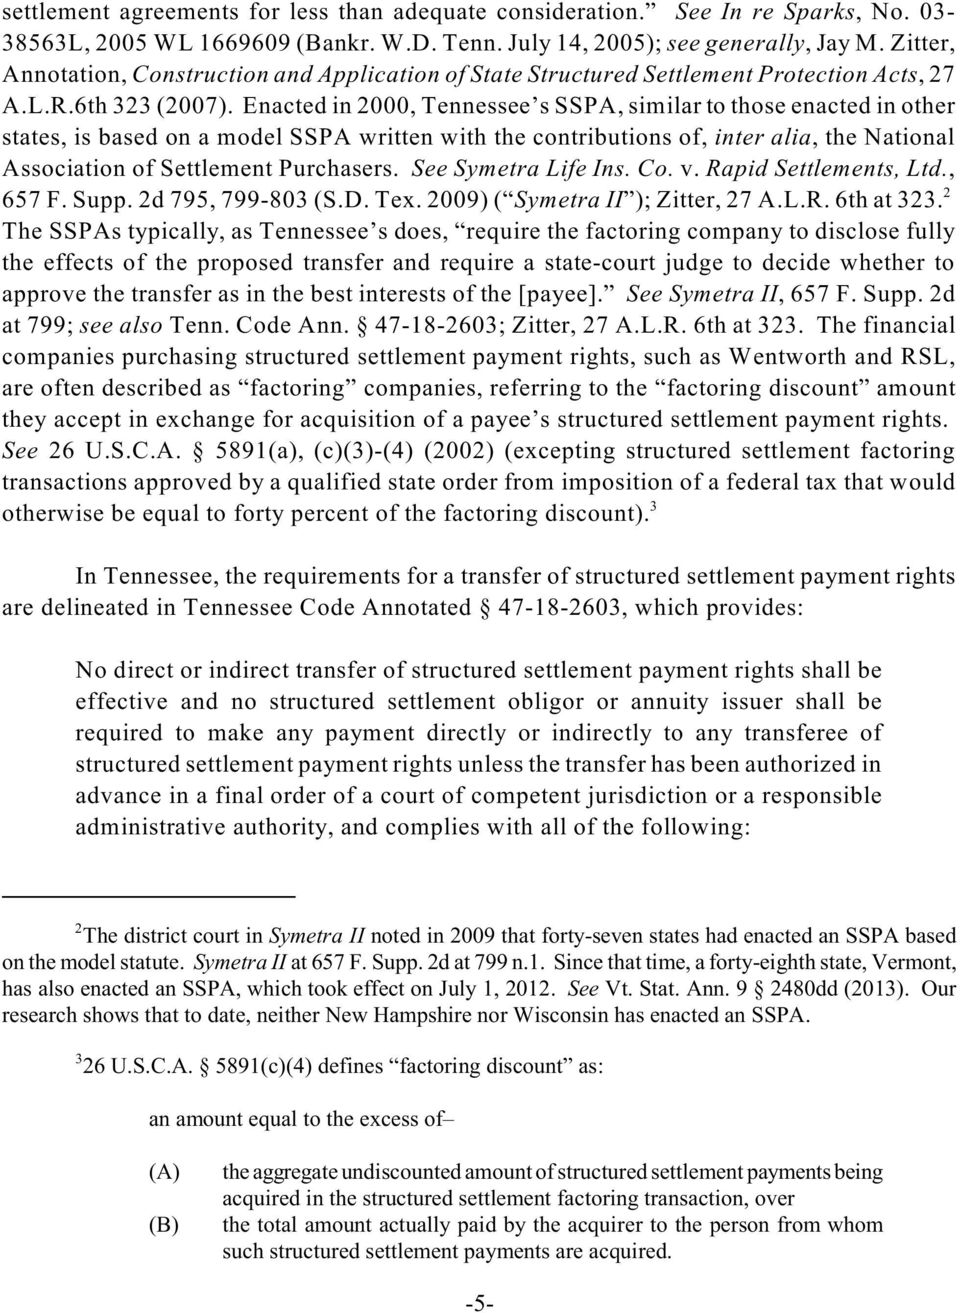 Enacted in 2000, Tennessee s SSPA, similar to those enacted in other states, is based on a model SSPA written with the contributions of, inter alia, the National Association of Settlement Purchasers.